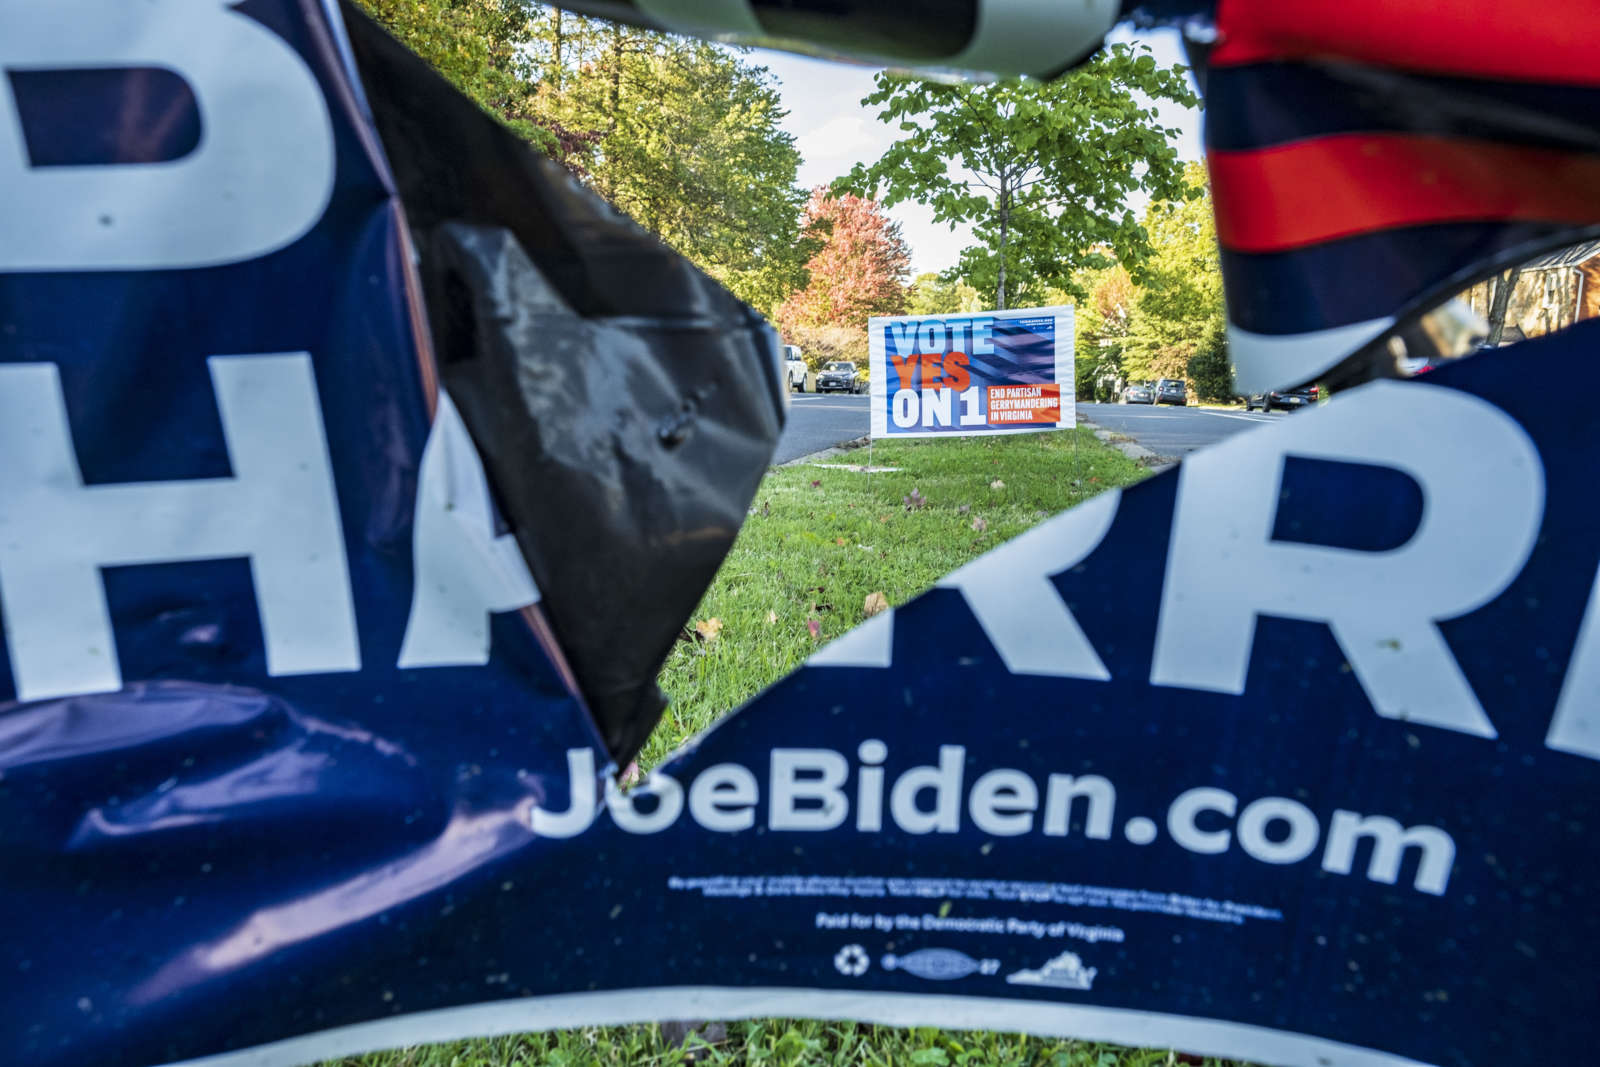 Widespread Political Sign Vandalism Is Continuing in Arlington